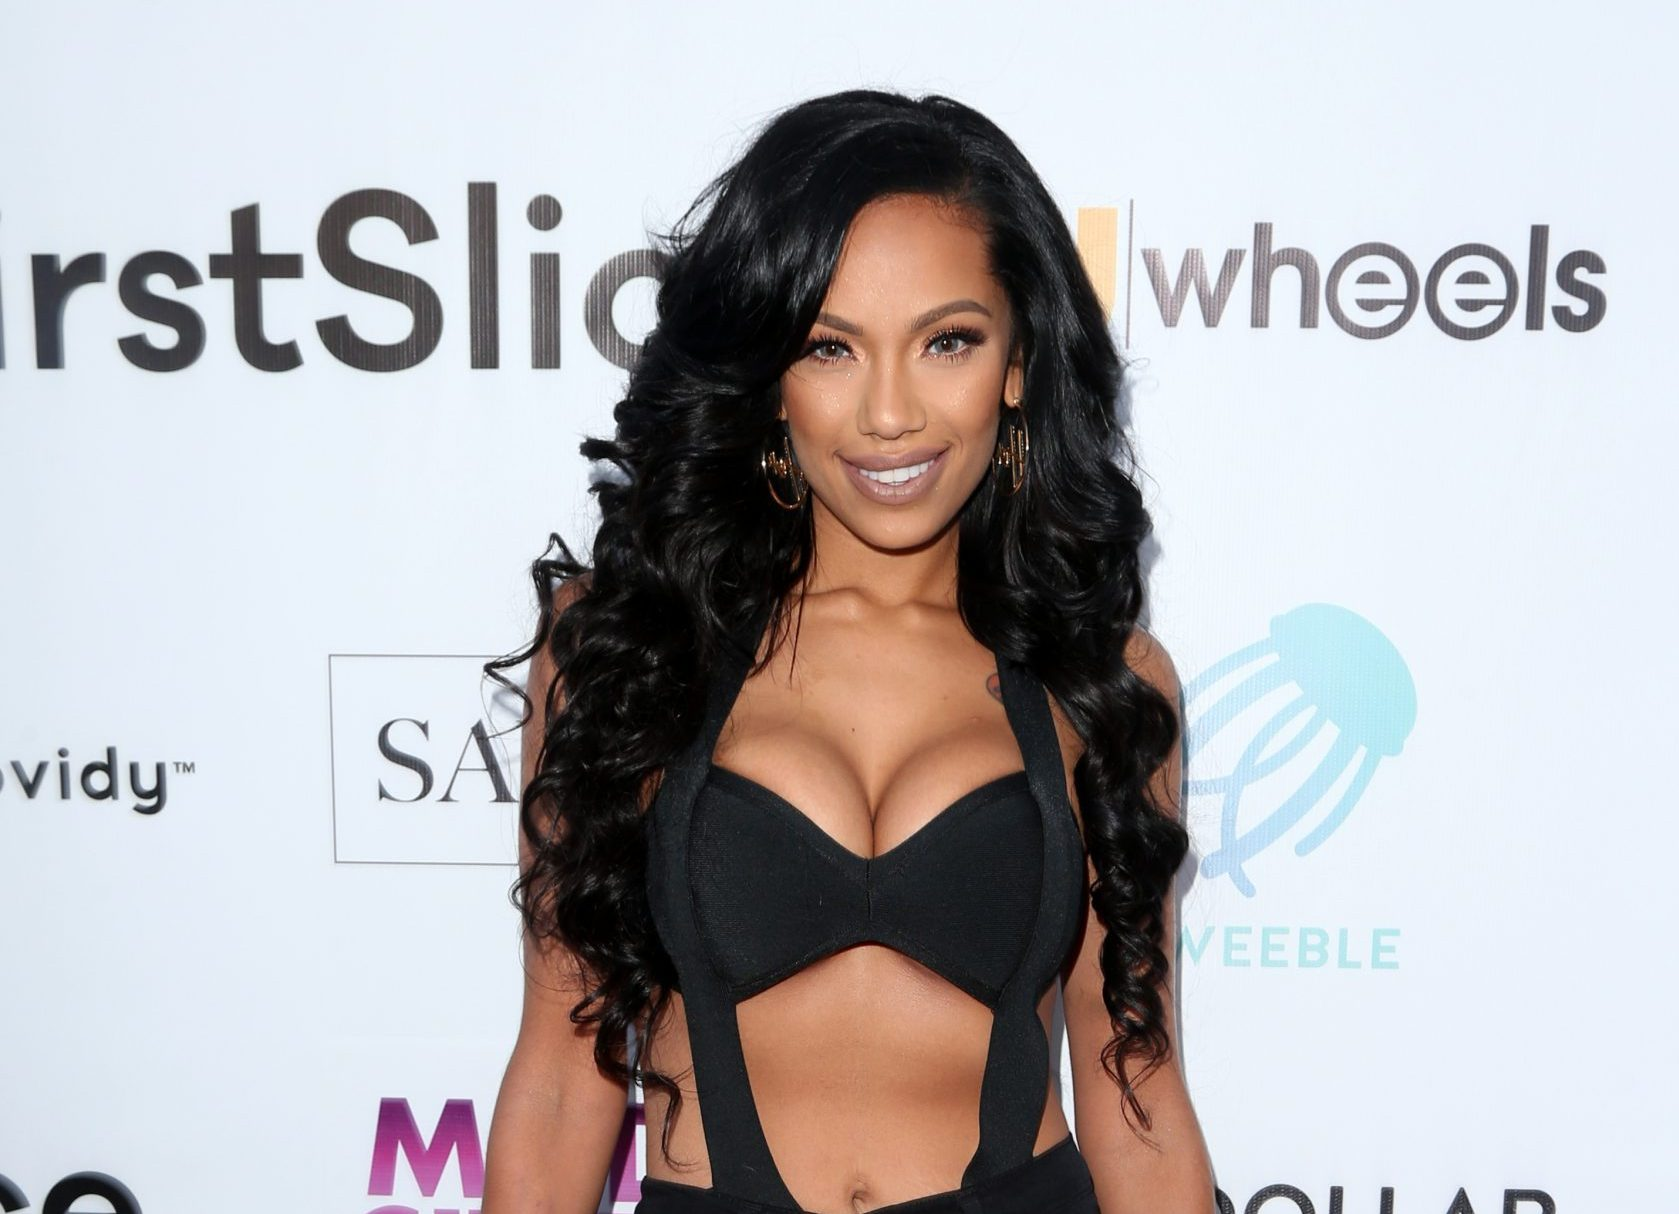 Erica Mena's Latest Jaw Dropping Photo Has Fans In Awe - She Looks Gorgeous In This Black Lace Corset!